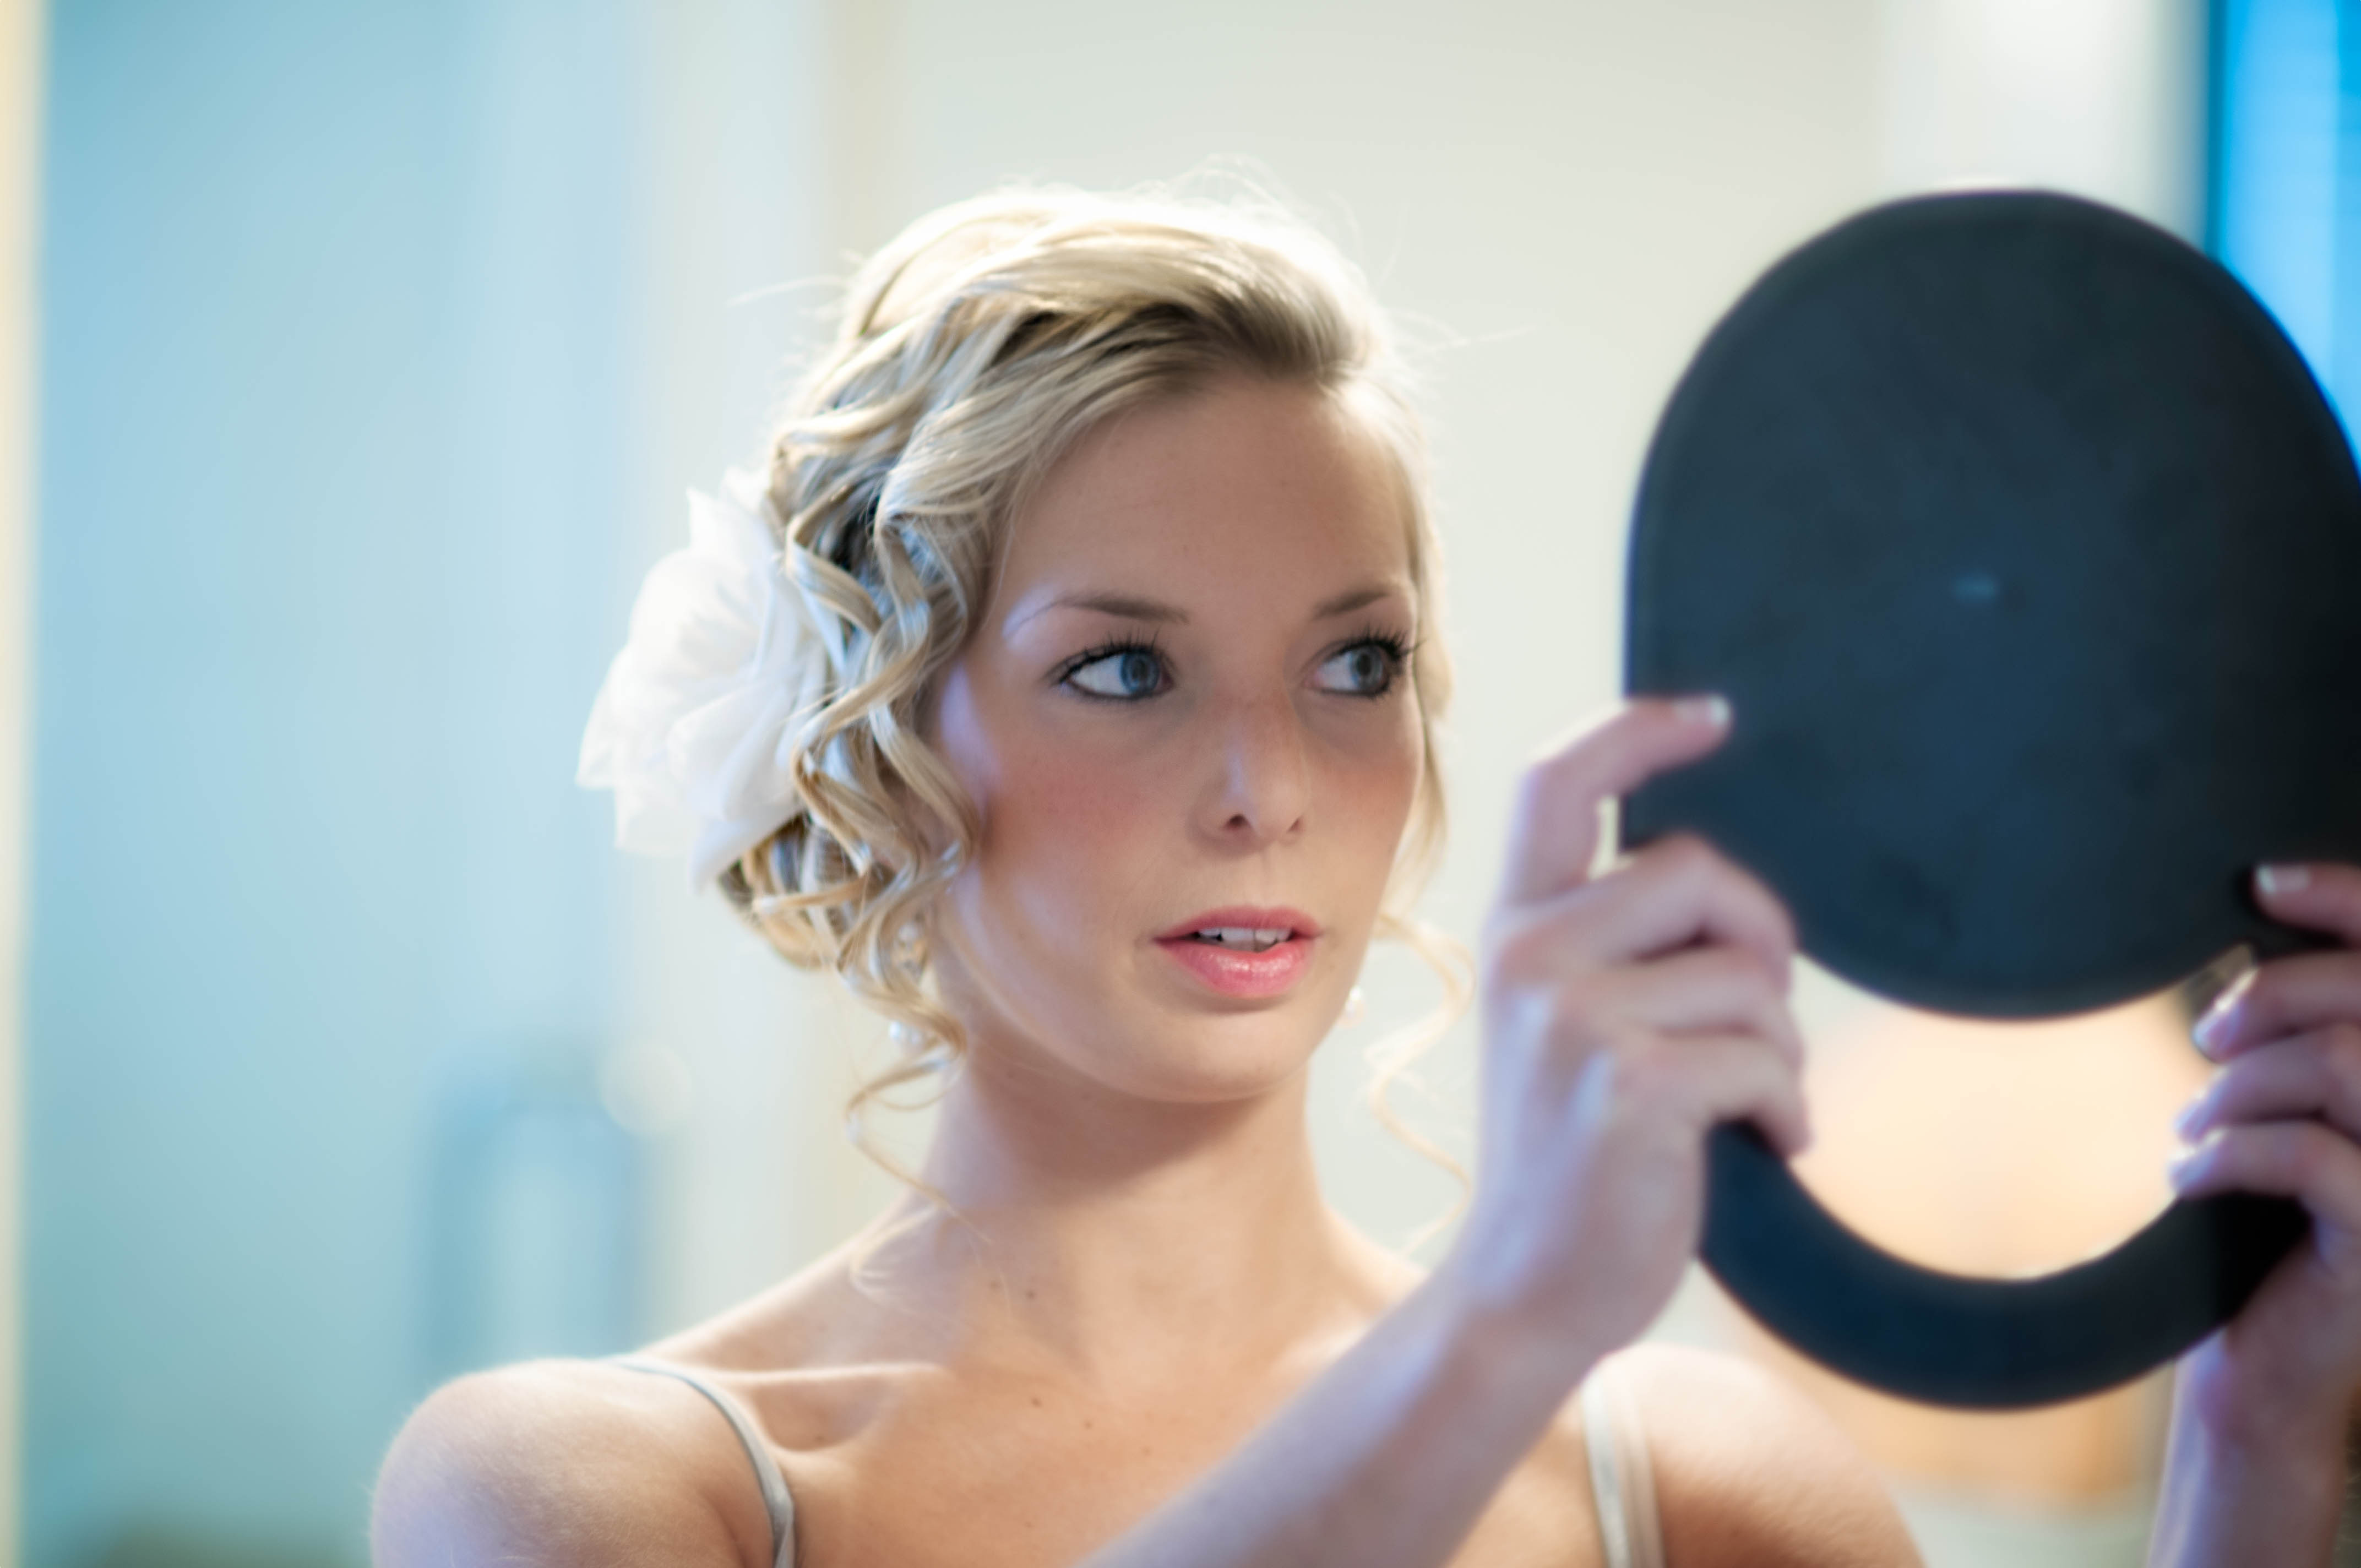 Wedding makeup ideas: 11 essentials recommended by a wedding makeup artist